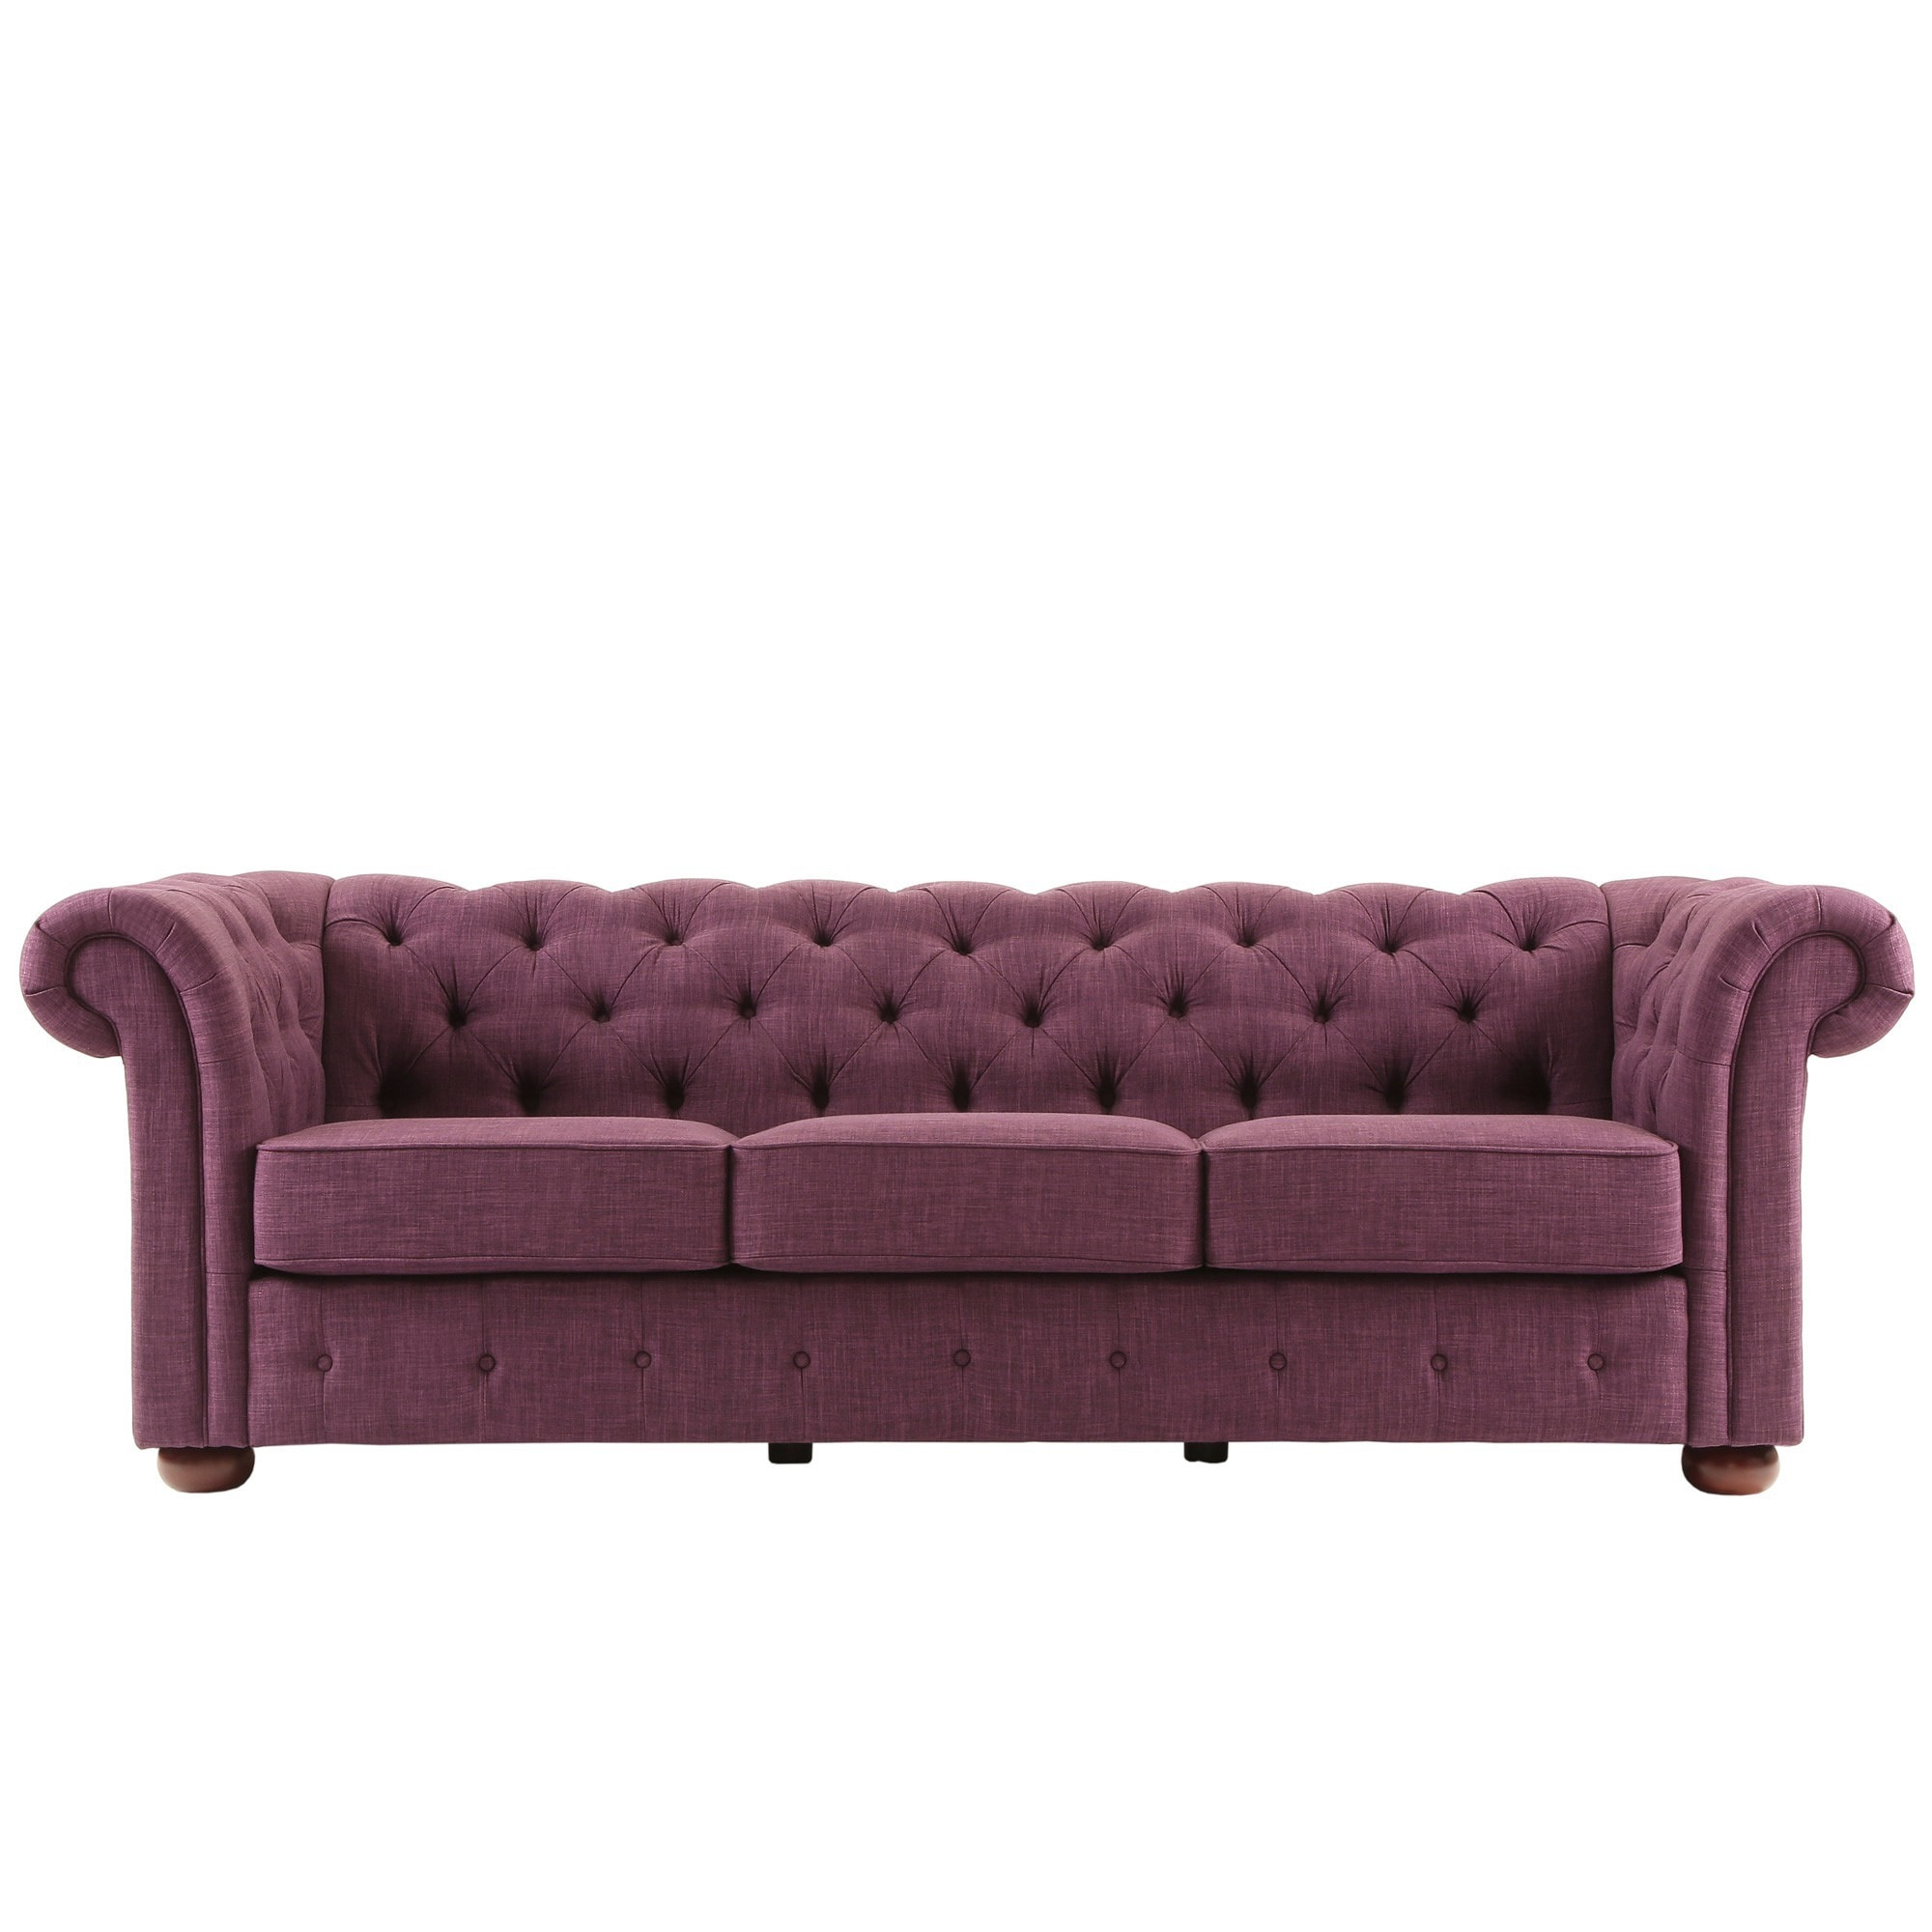 Knightsbridge Tufted Scroll Arm Chesterfield Sofa By Inspire Q On Free Shipping Today 9242312